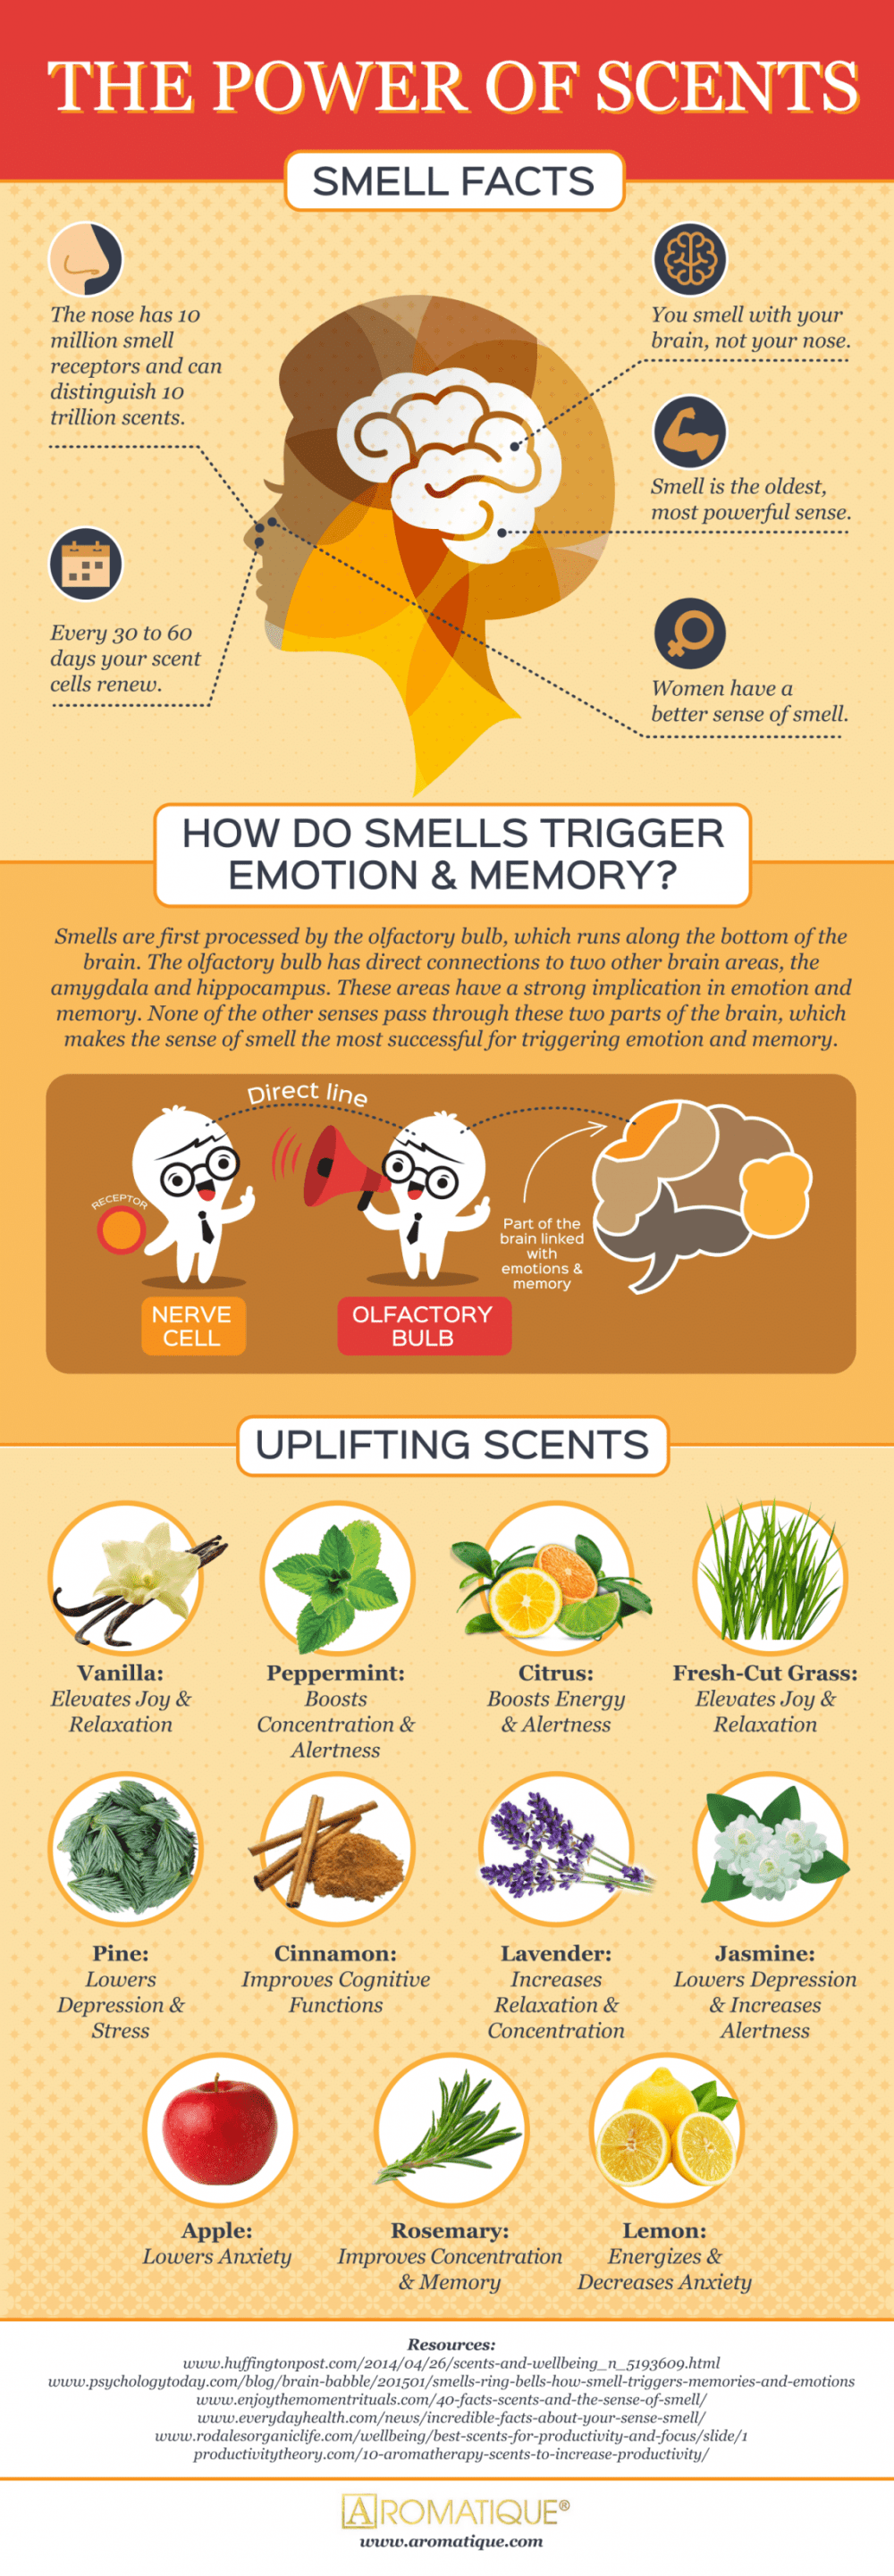 dsbgdsywrshre45d - Why smells are so linked to memory and emotions